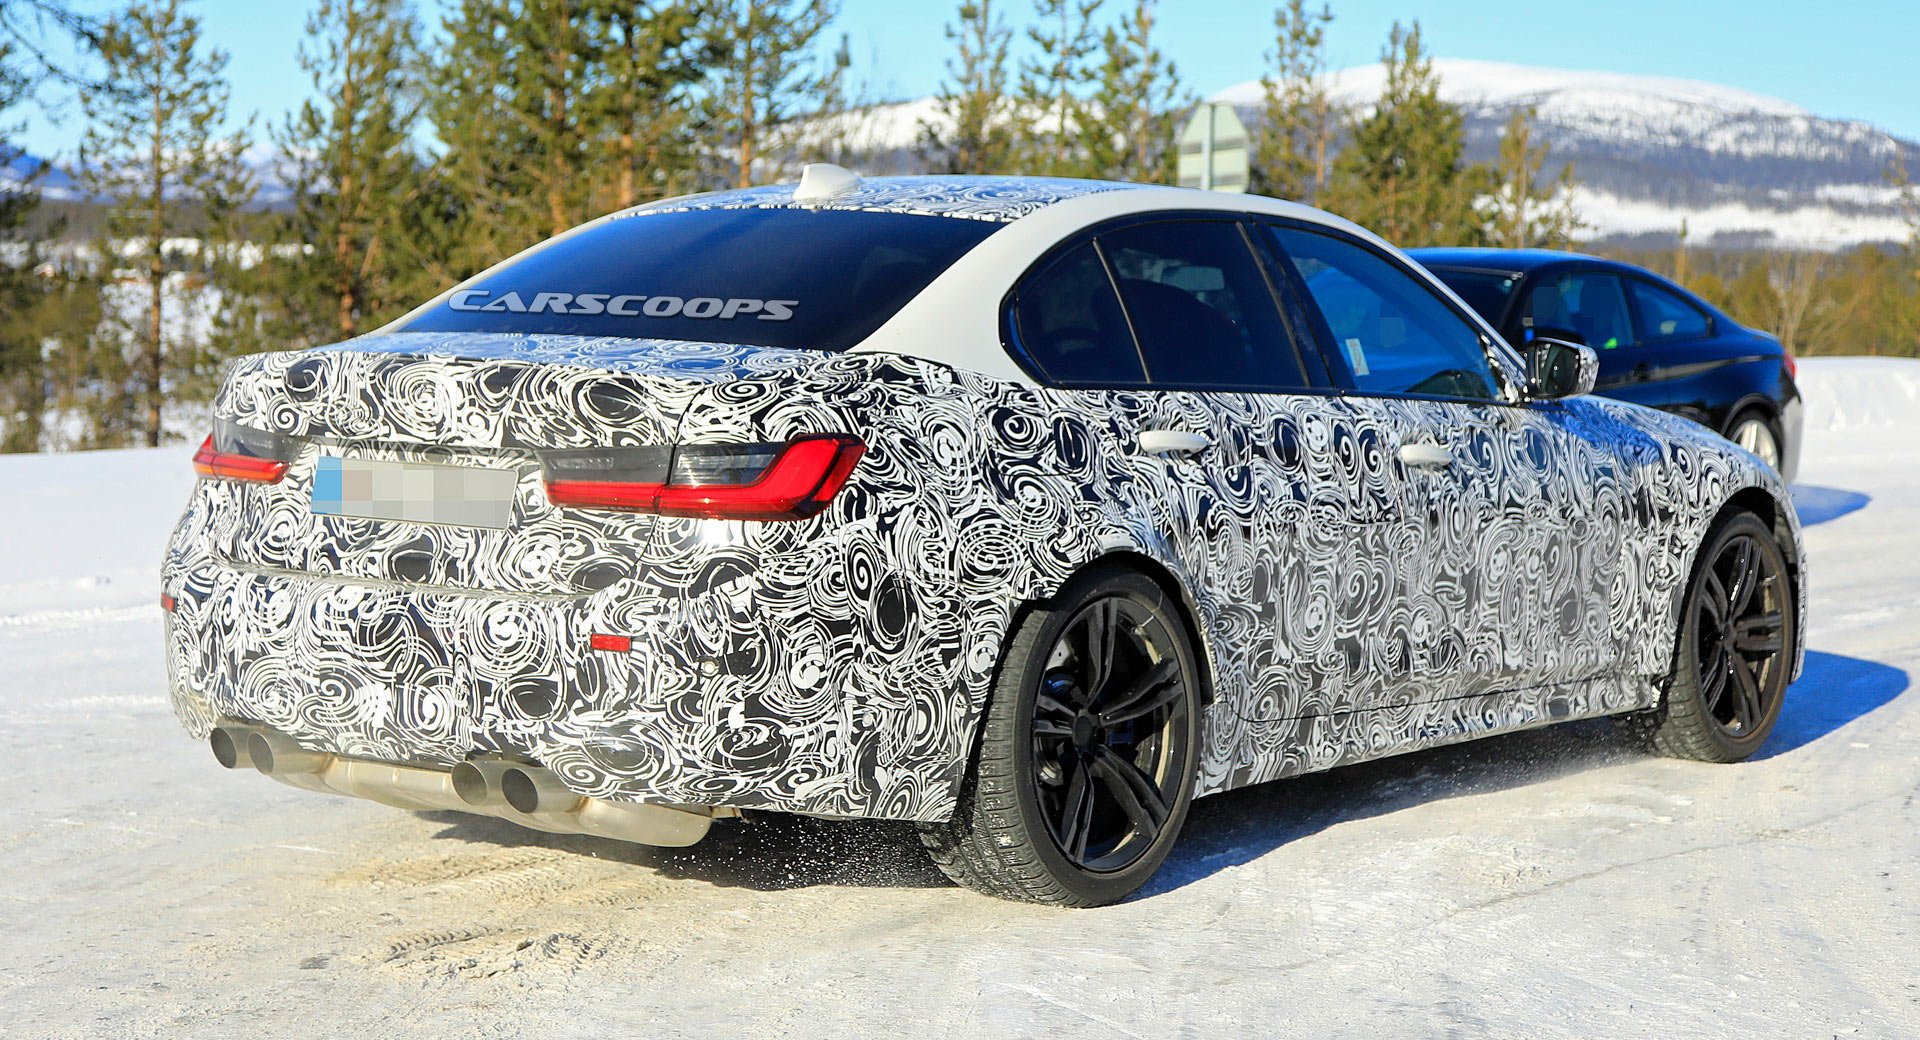 68 Concept of 2020 Bmw M3 Awd New Concept for 2020 Bmw M3 Awd